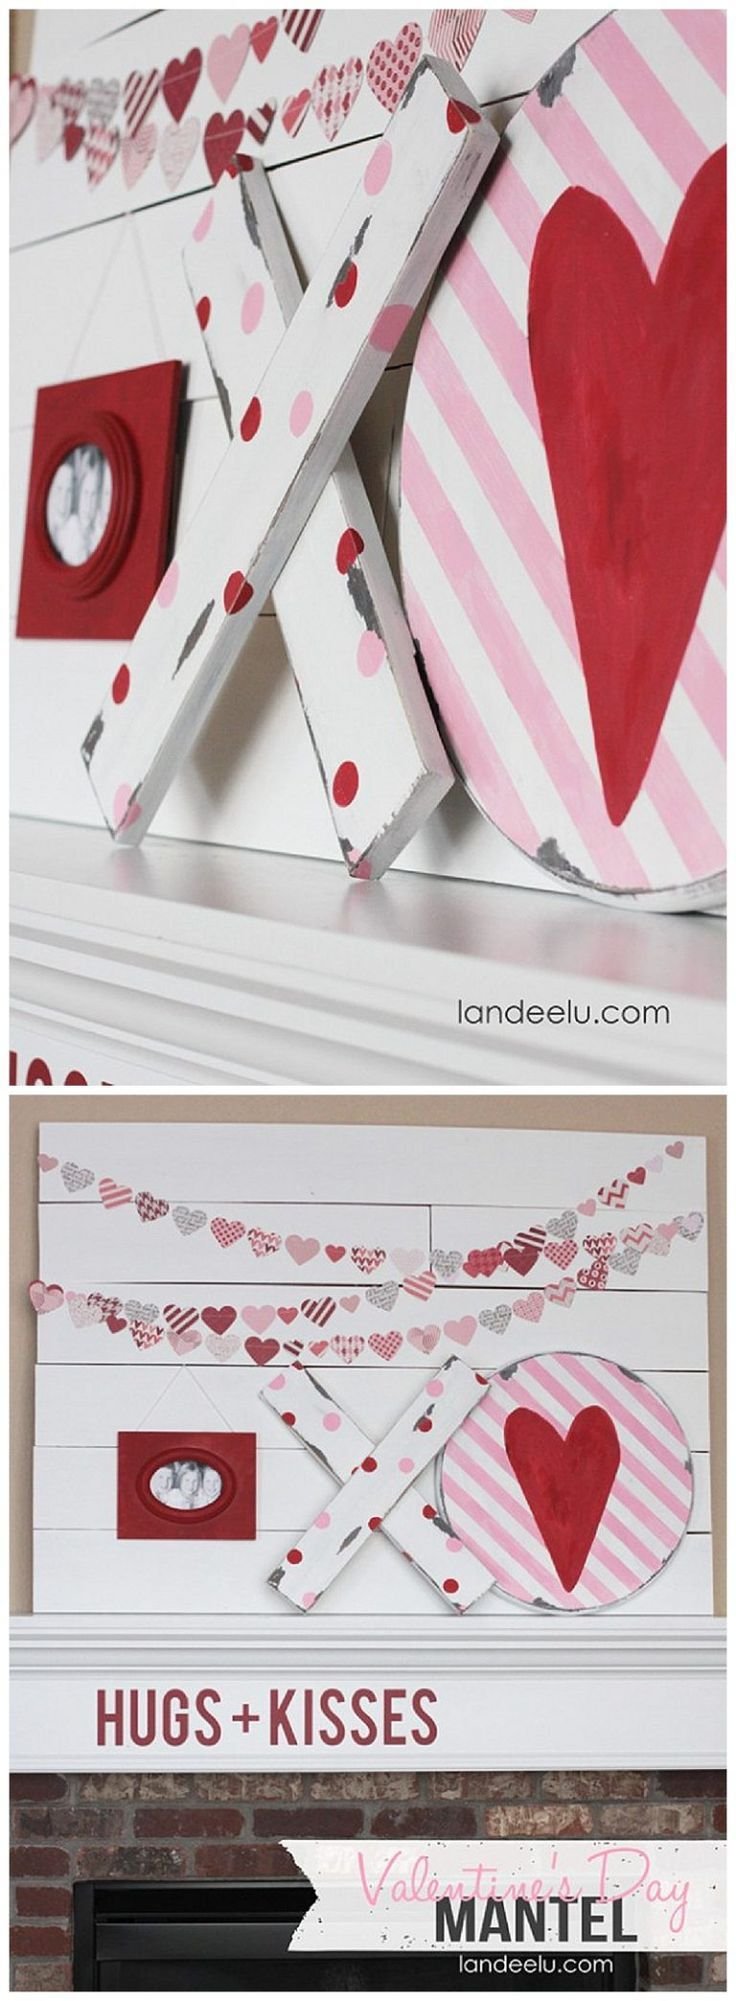 37853ab8553d9d4d95f83293a516a6a9 - Valentine's Day Mantel: Hugs & Kisses | DIY: different colors